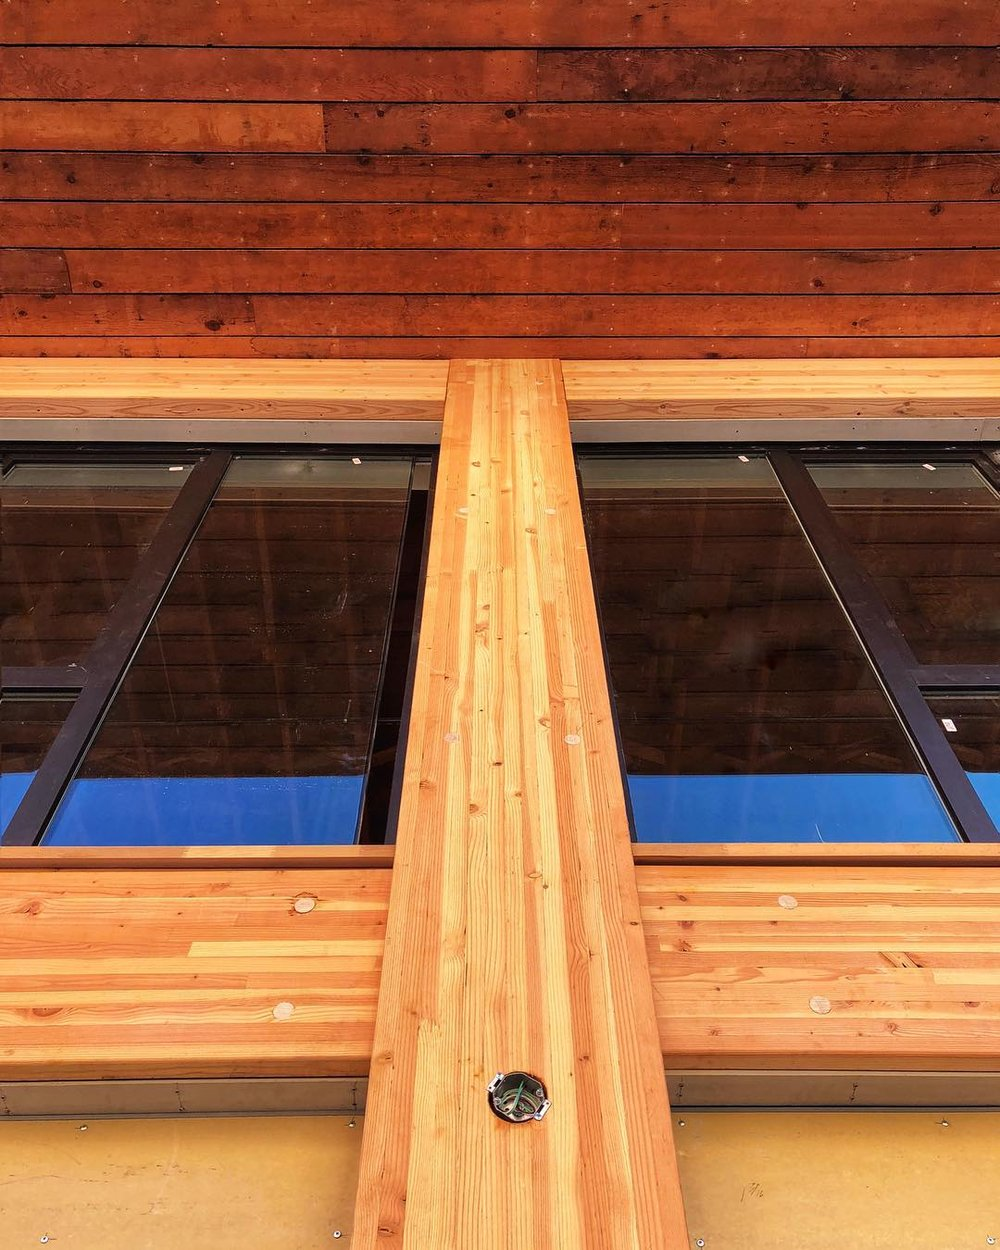 Wood Façade – New Glulams at Façade, Reclaimed Wood at Soffit